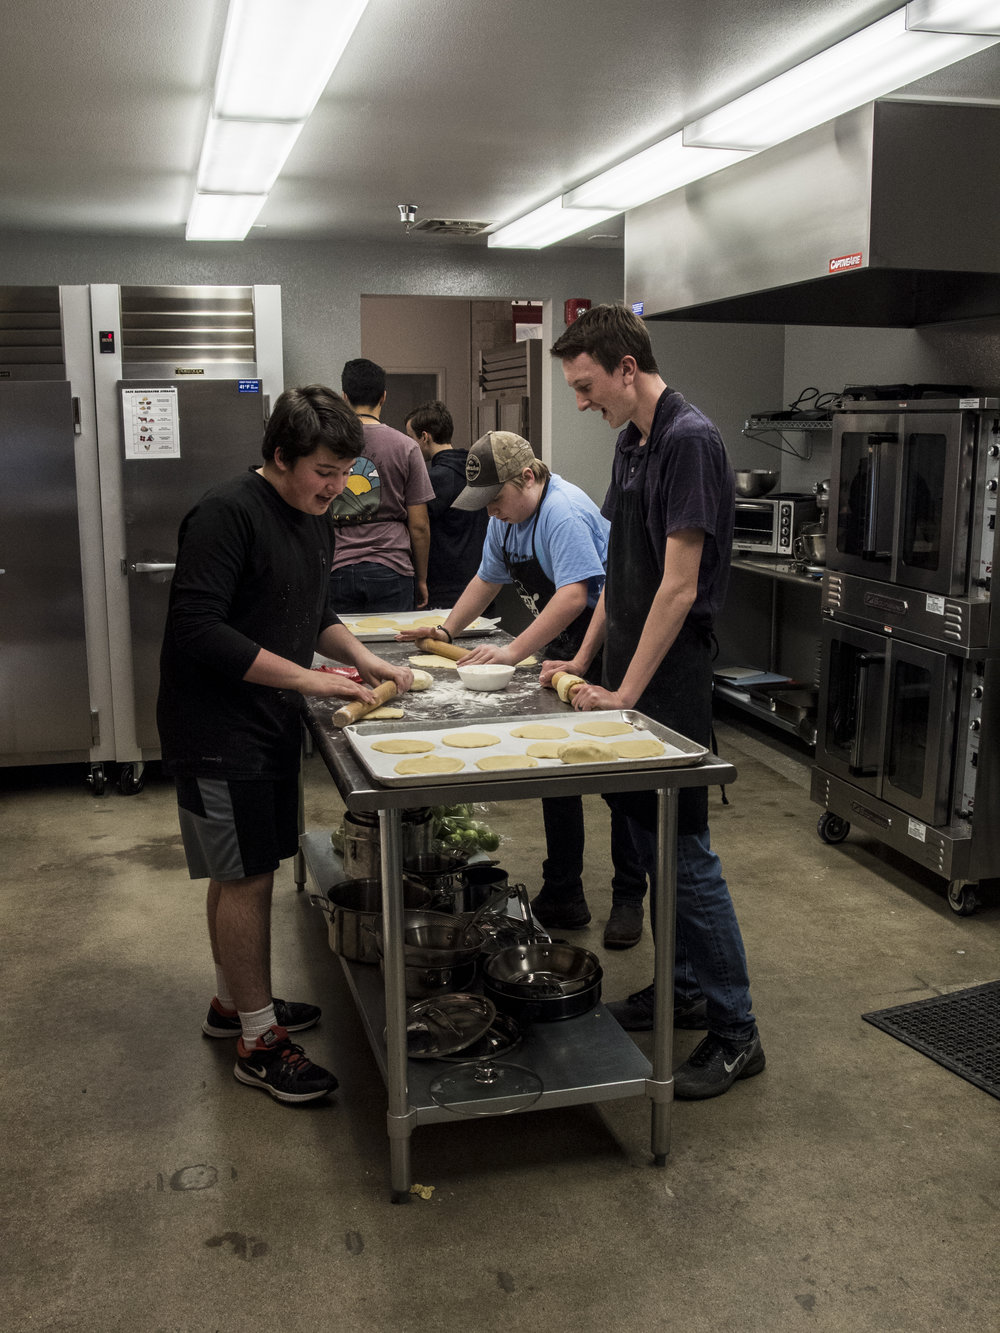 Solution Lab students use the industrial kitchen to make homemade pies to sell at community events.